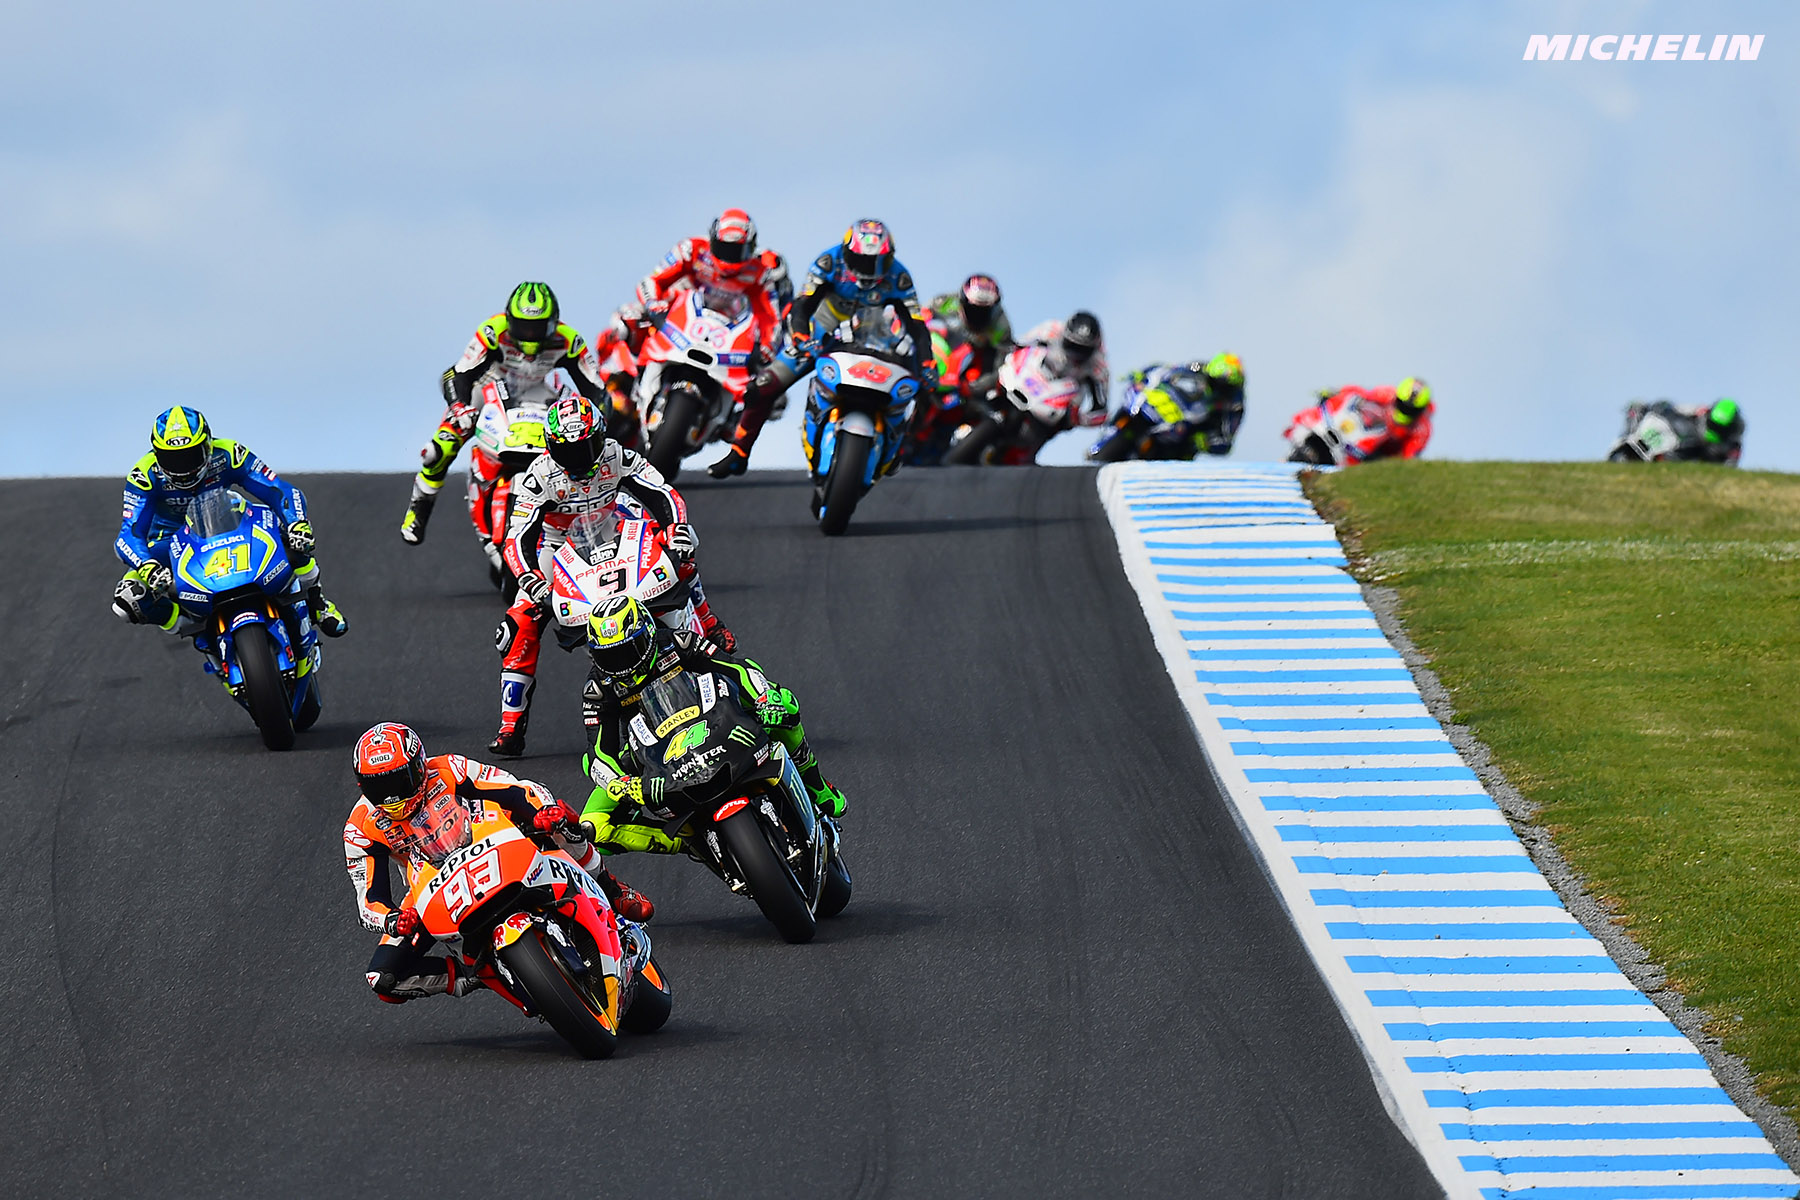 MotoGP: Onward to Phillip Island for the MICHELIN® Australian Motorcycle Grand Prix